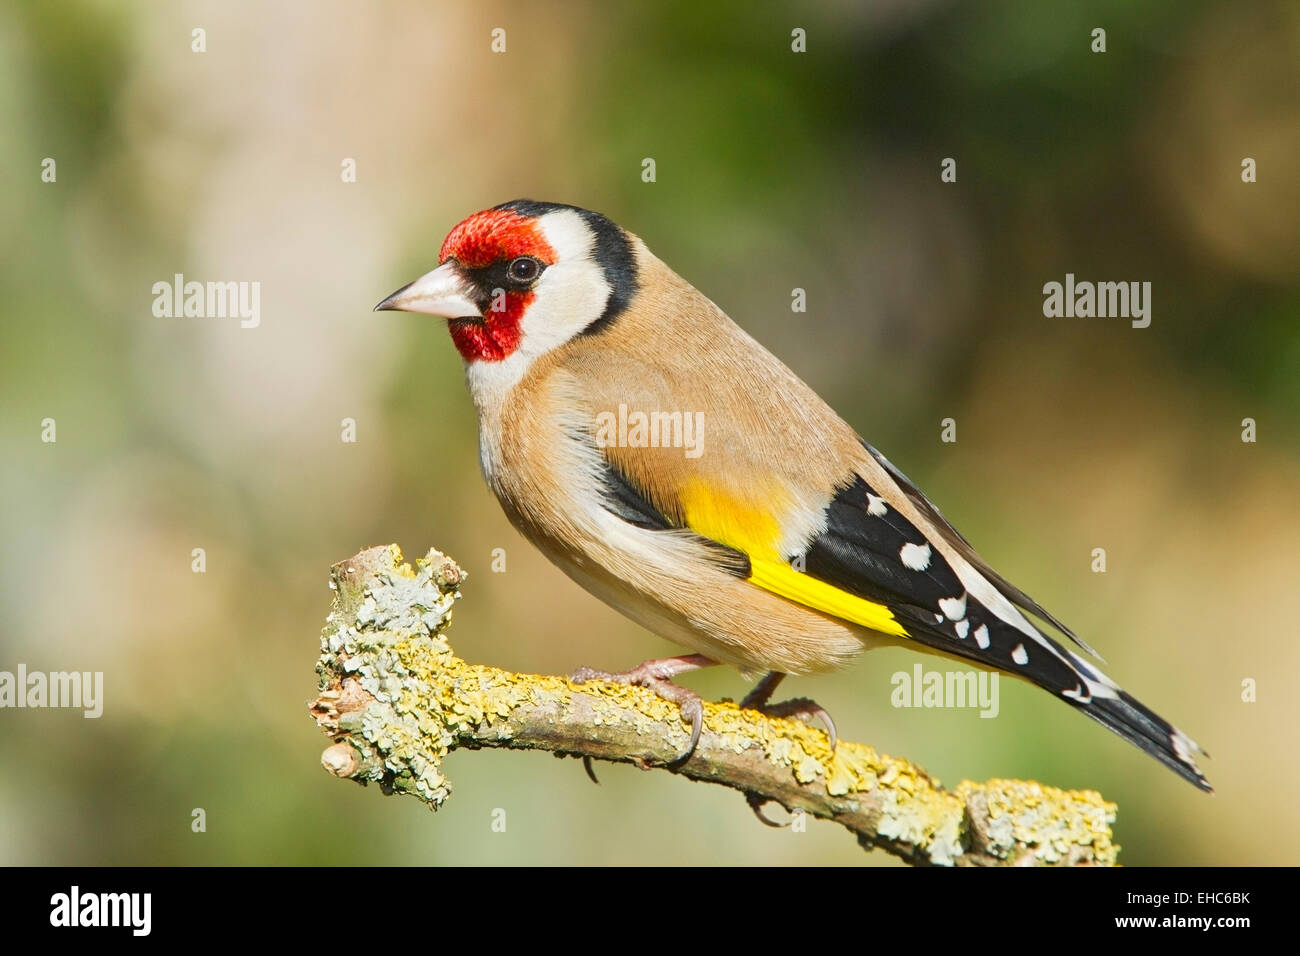 European Goldfinch (Carduelis carduelis) adult male perched on lichen covered branch, England, United Kingdom - Stock Image